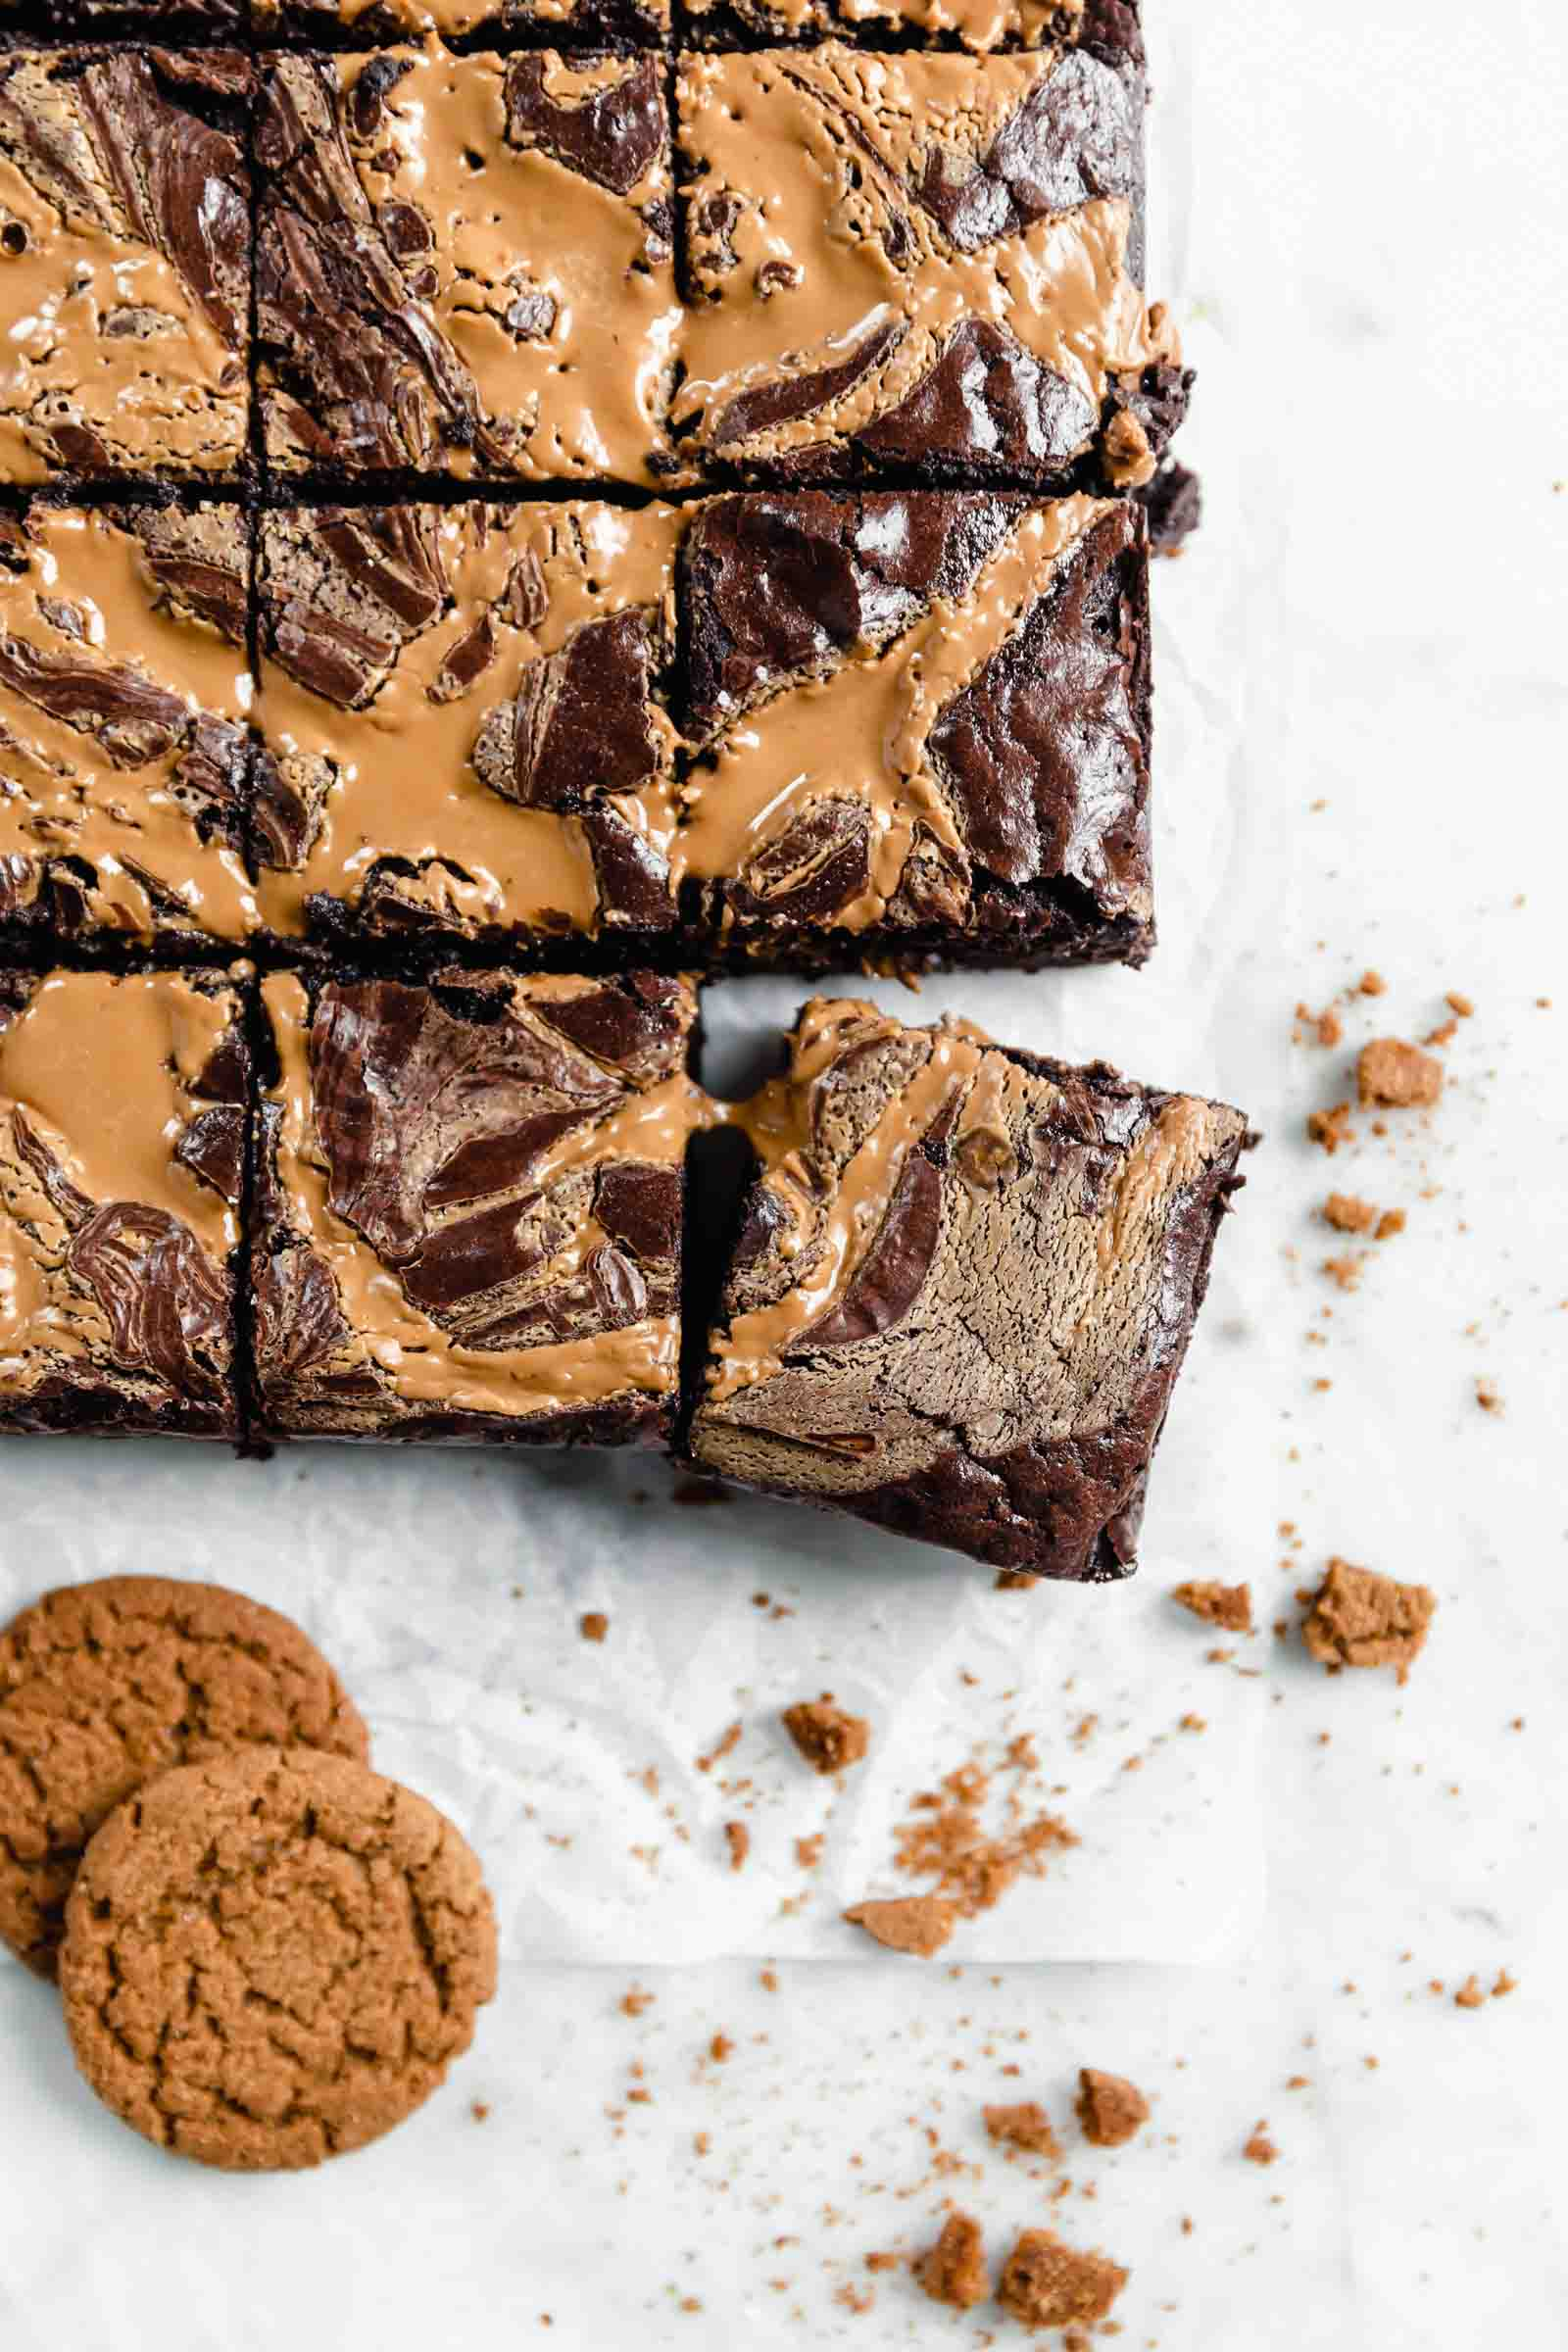 cookie butter swirled brownies on parchment paper with cookie crumbs